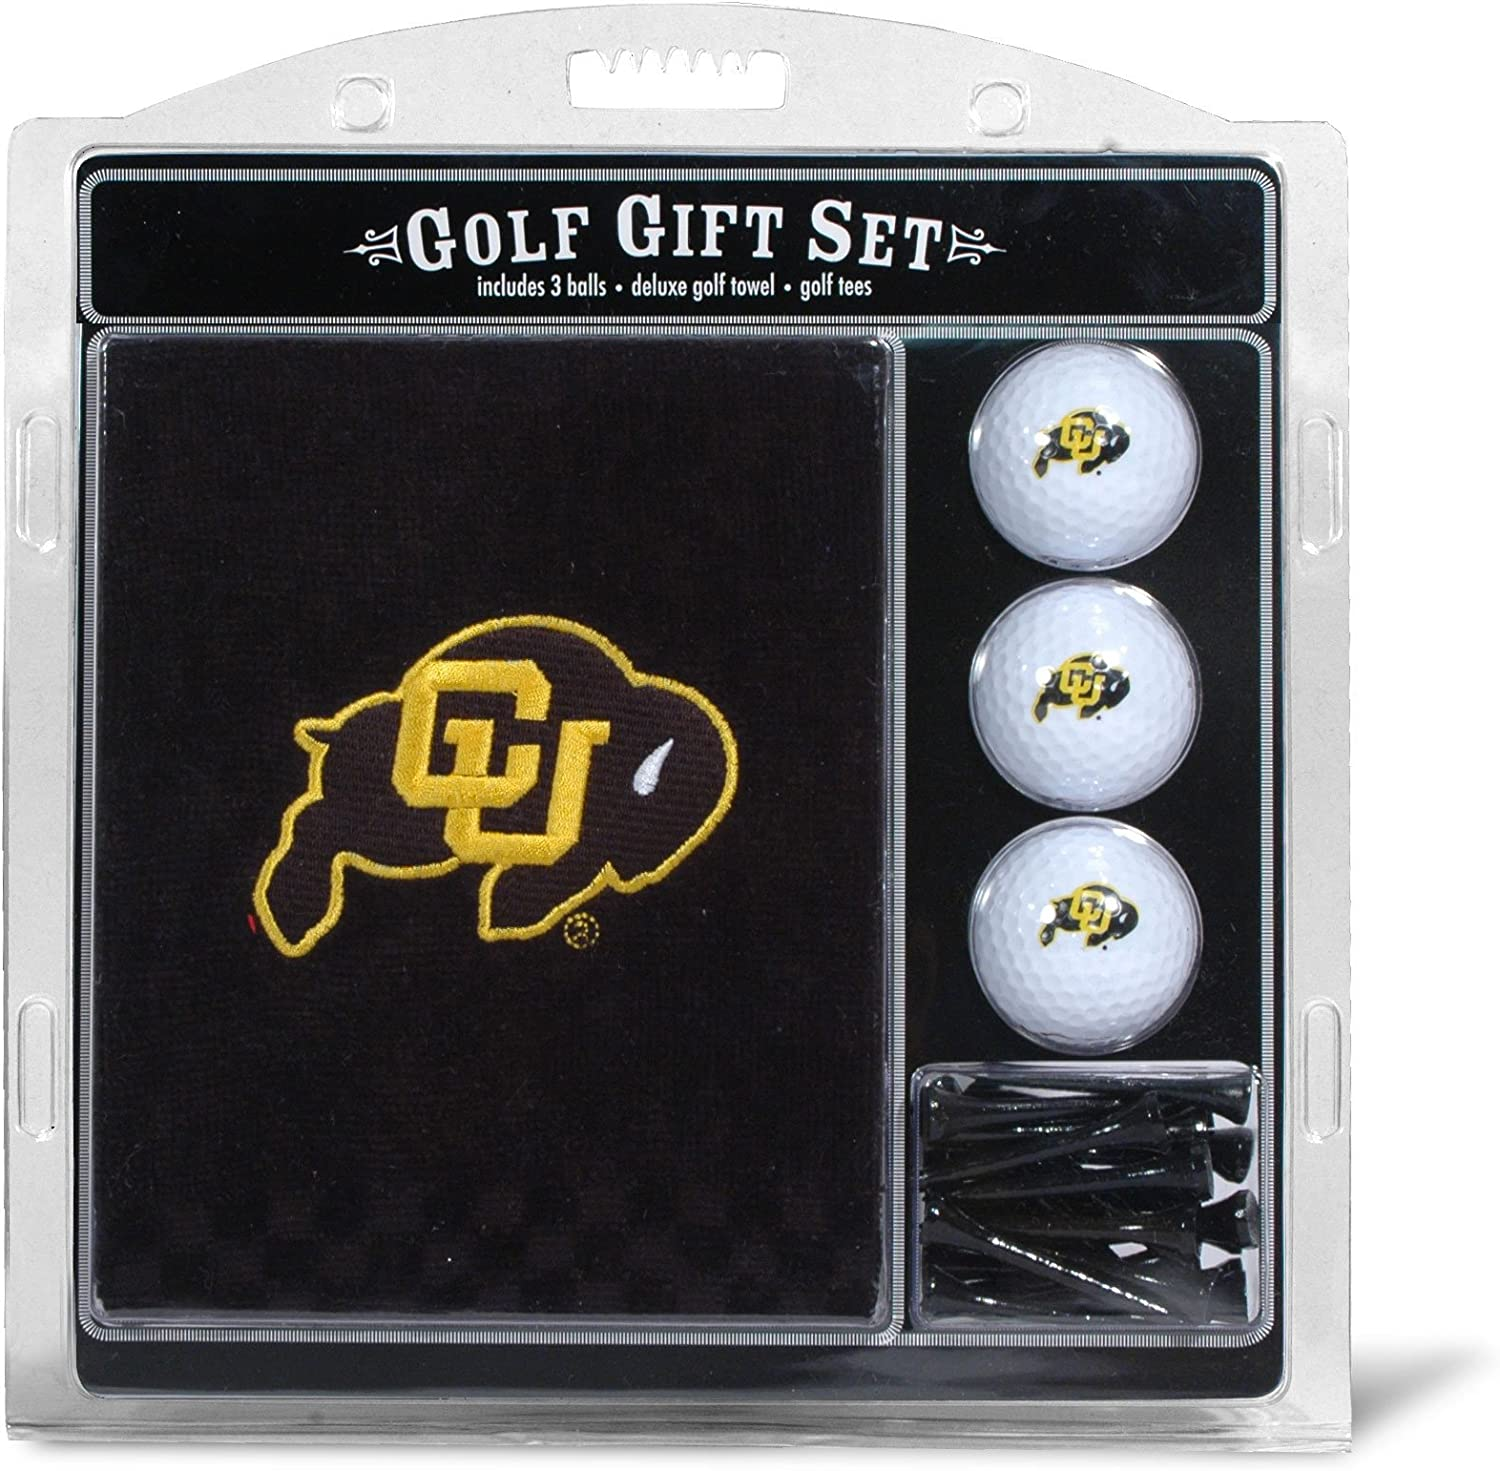 "B0001LT3FQ Team Golf NCAA Gift Set Embroidered Golf Towel, 3 Golf Balls, and 14 Golf Tees 2-3/4"" Regulation, Tri-Fold Towel 16"" x 22"" & 100% Cotton 81CSIjfu2oL"